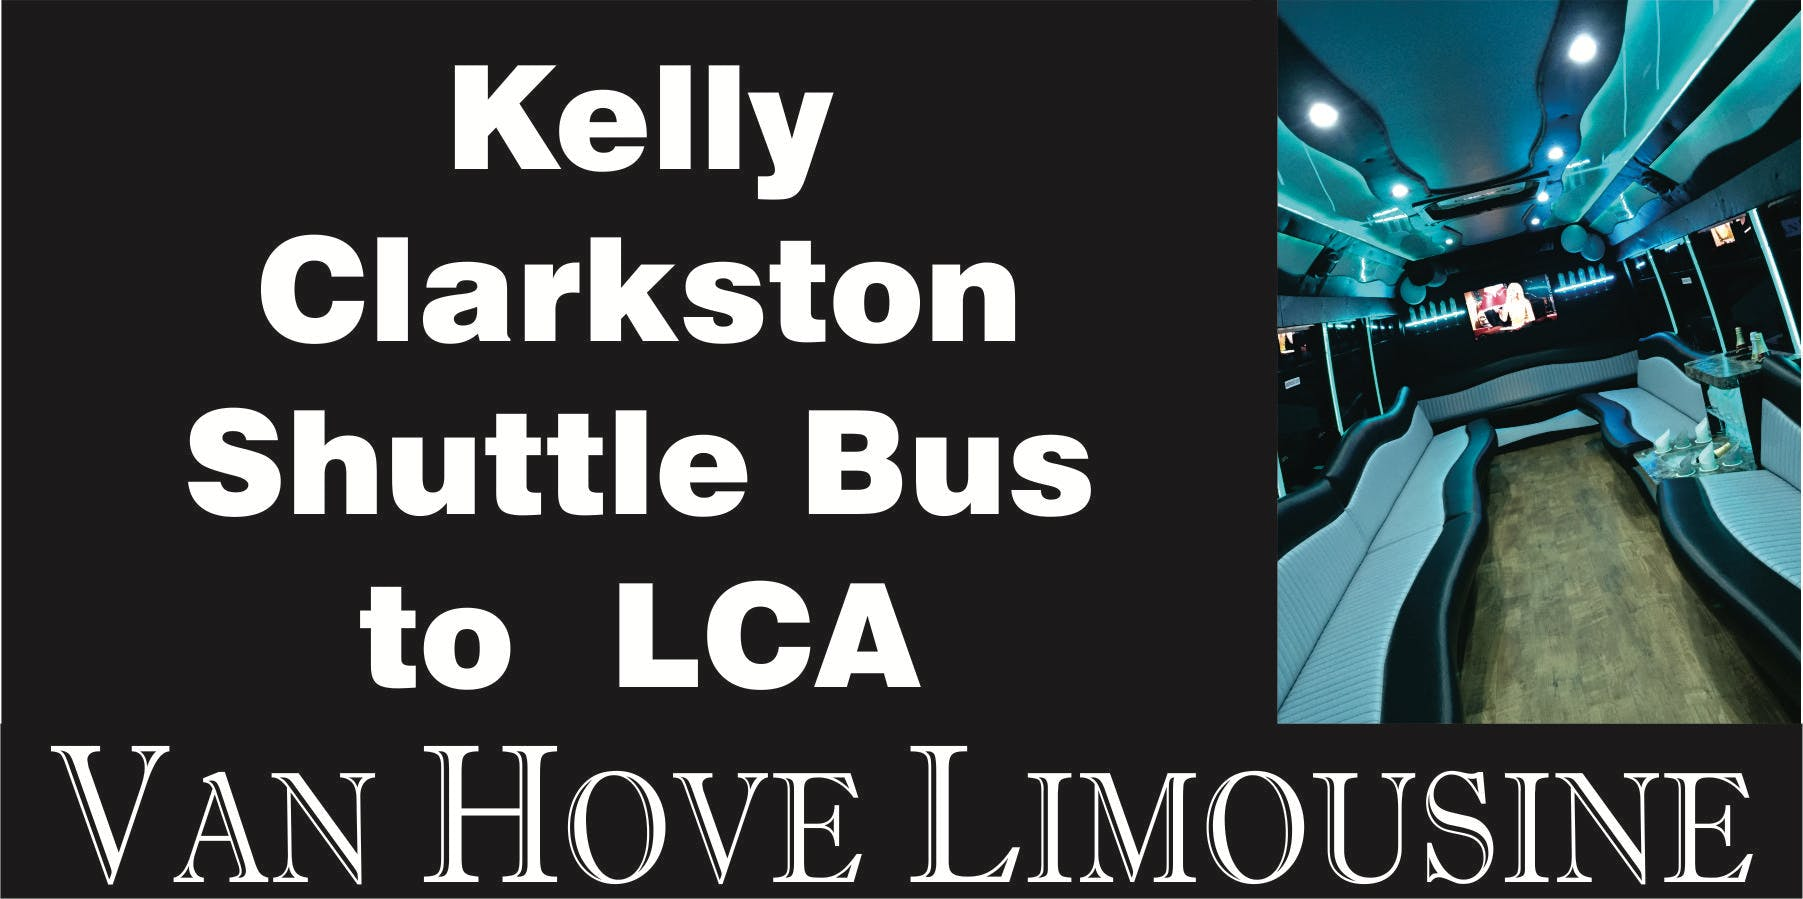 Kelly Clarkston Shuttle Bus to LCA from O'Halloran's / Orleans Mt. Clemens